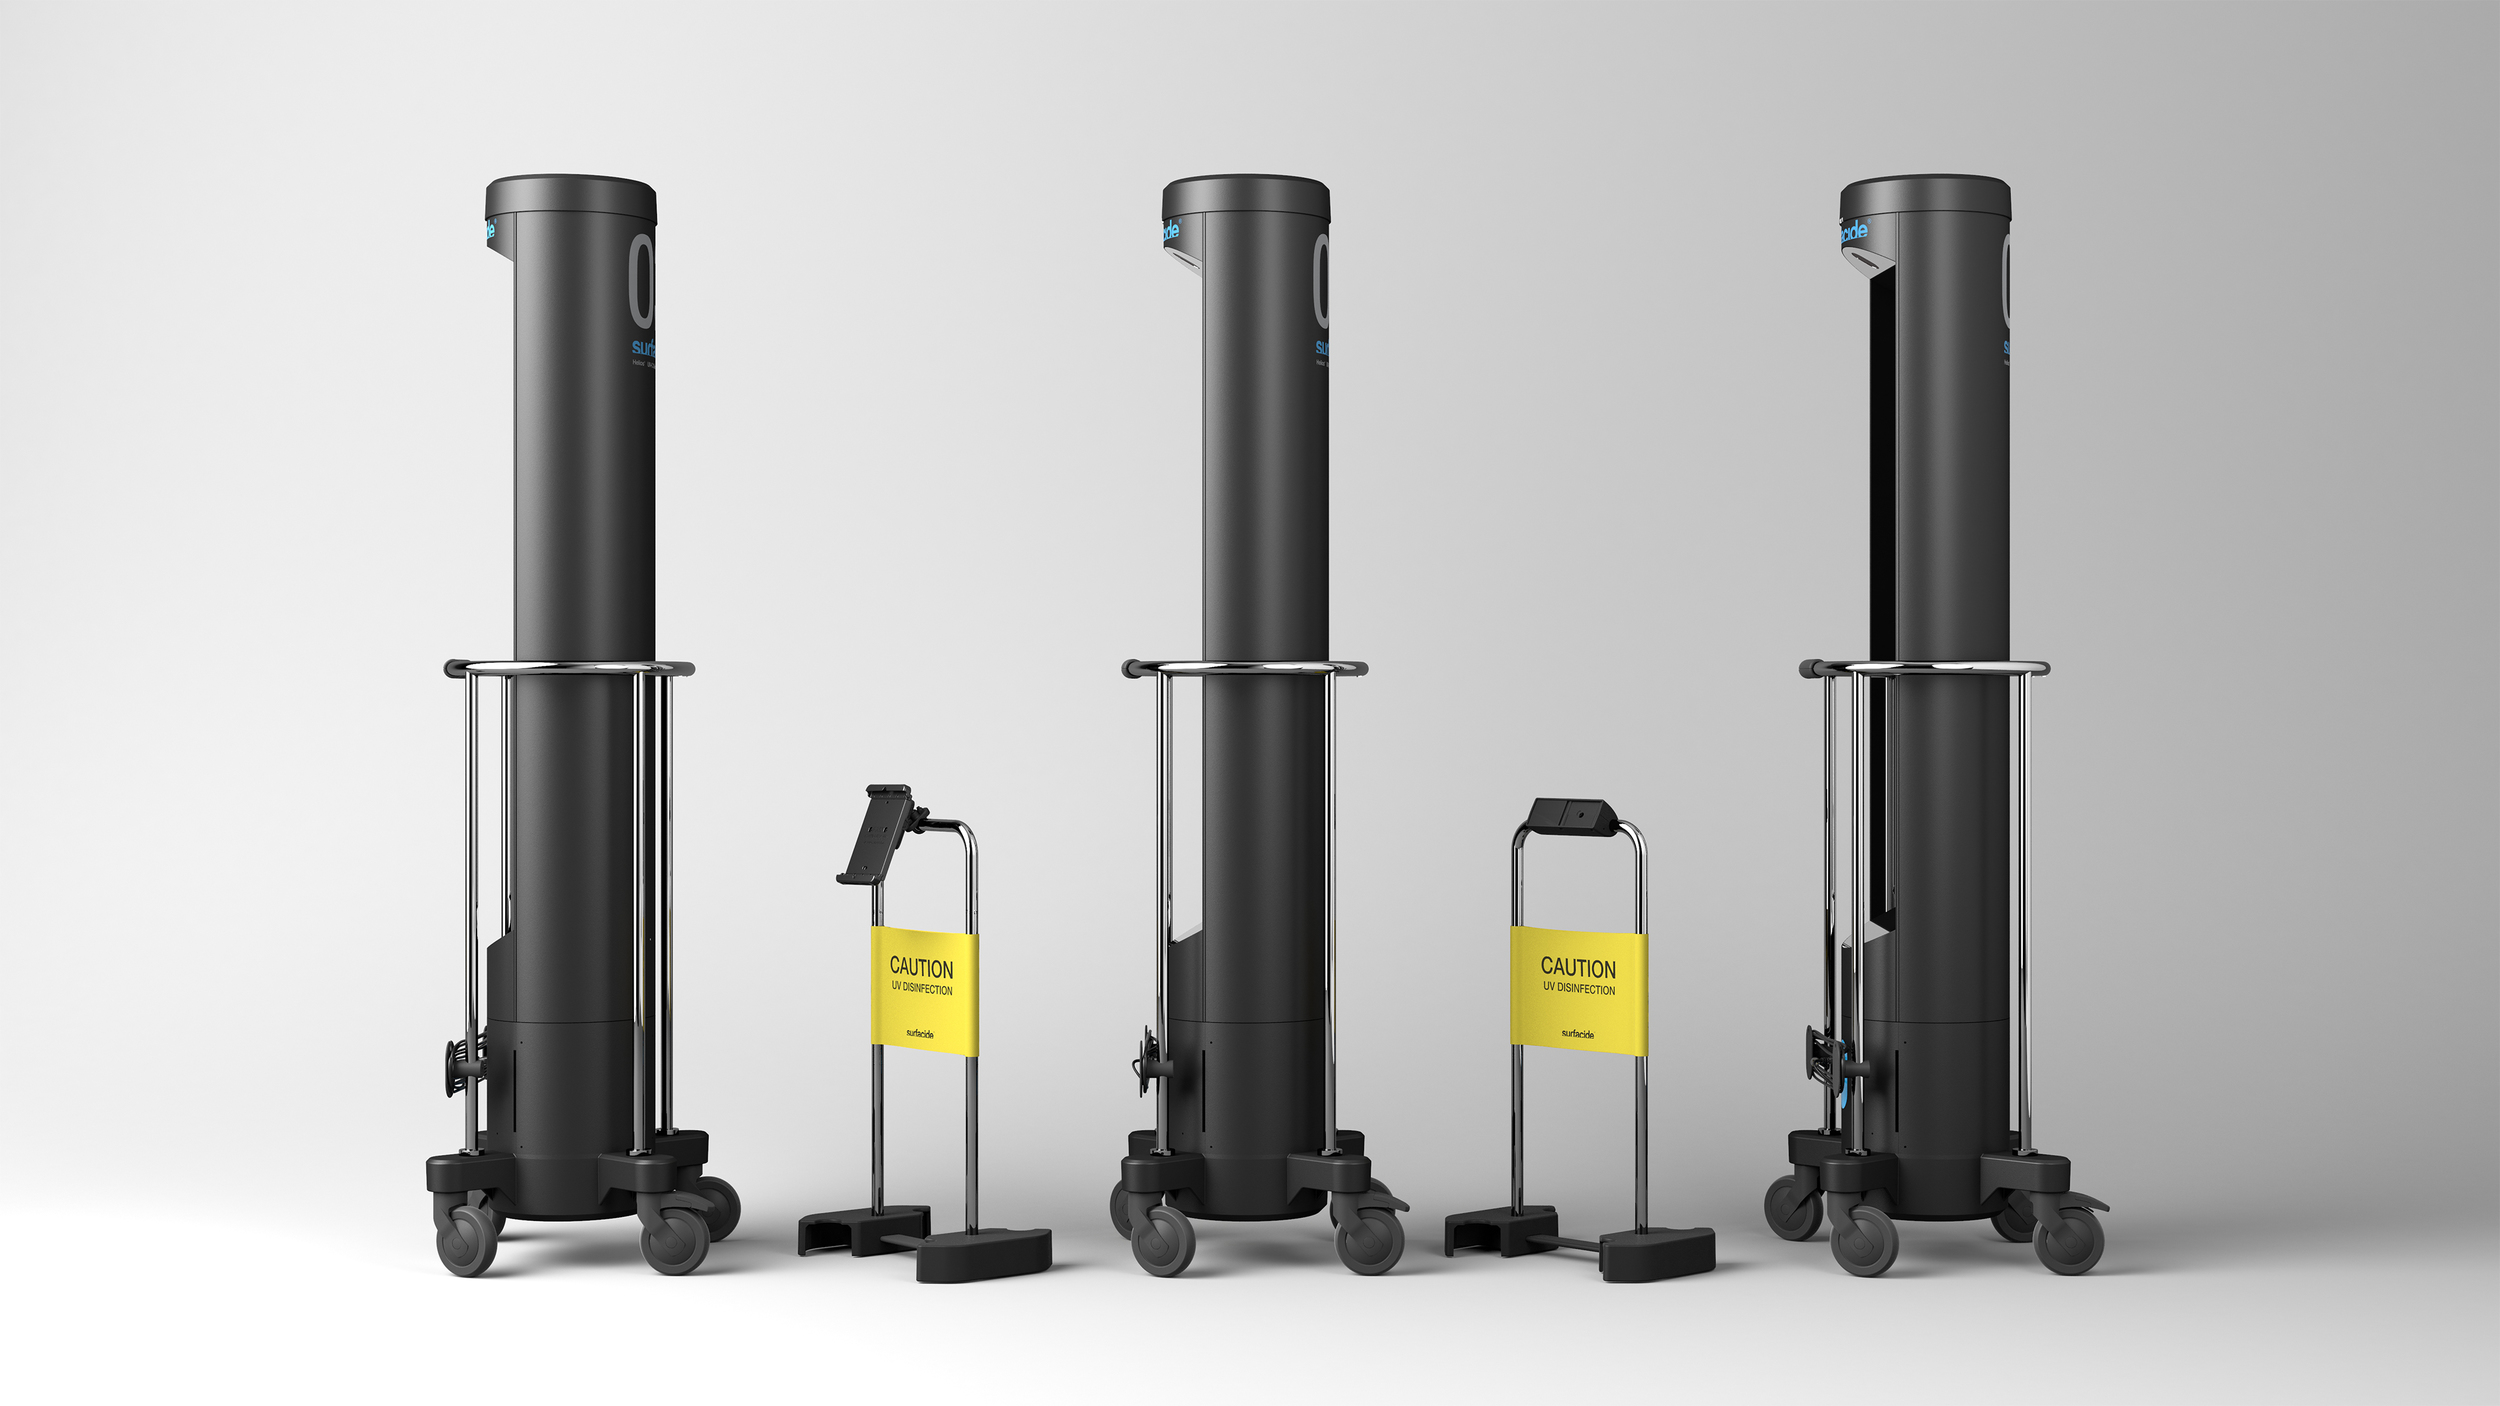 The Surfacide UV-C towers with motion sensor and control stand - uv disinfection , uv-c disinfection, decontamination.